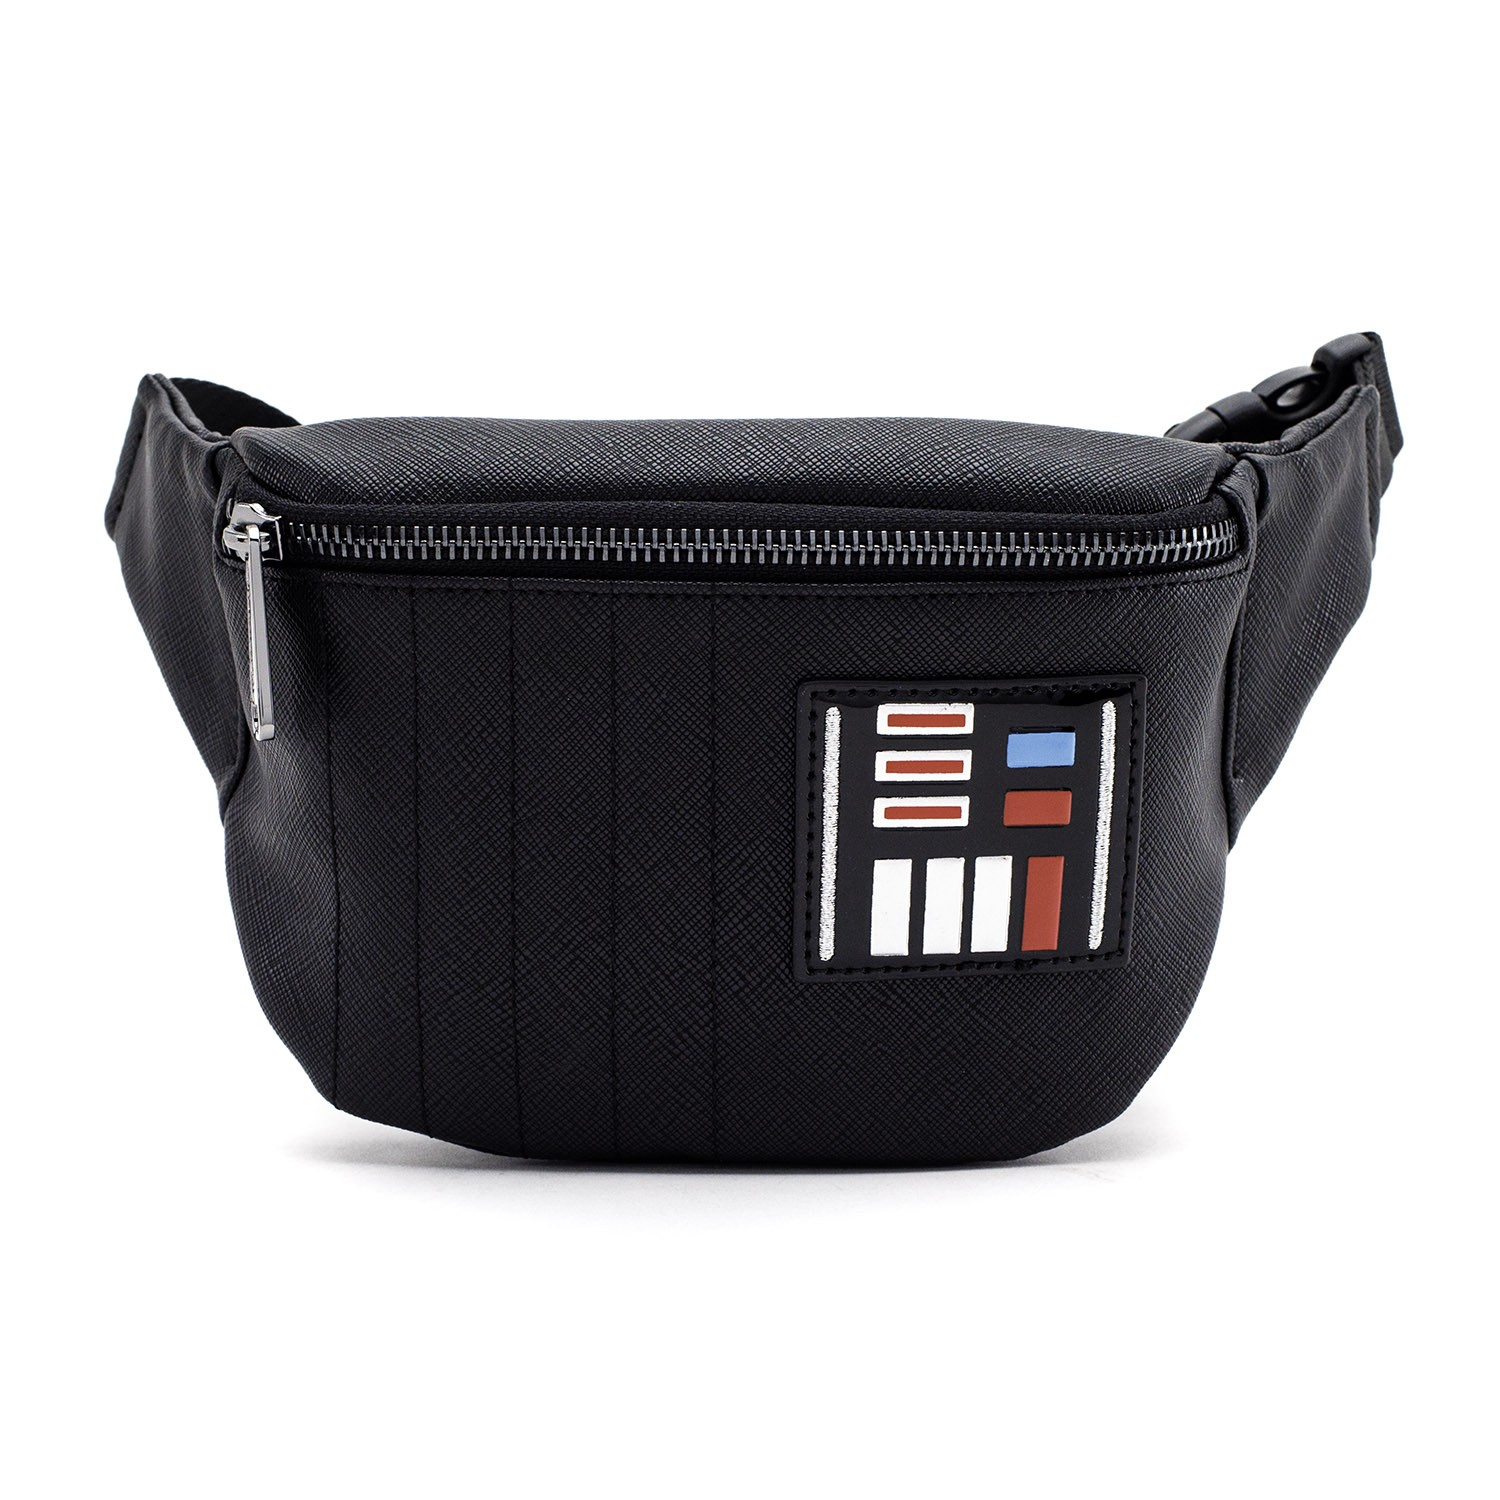 Loungefly x Star Wars Darth Vader Faux Leather Belt Bag